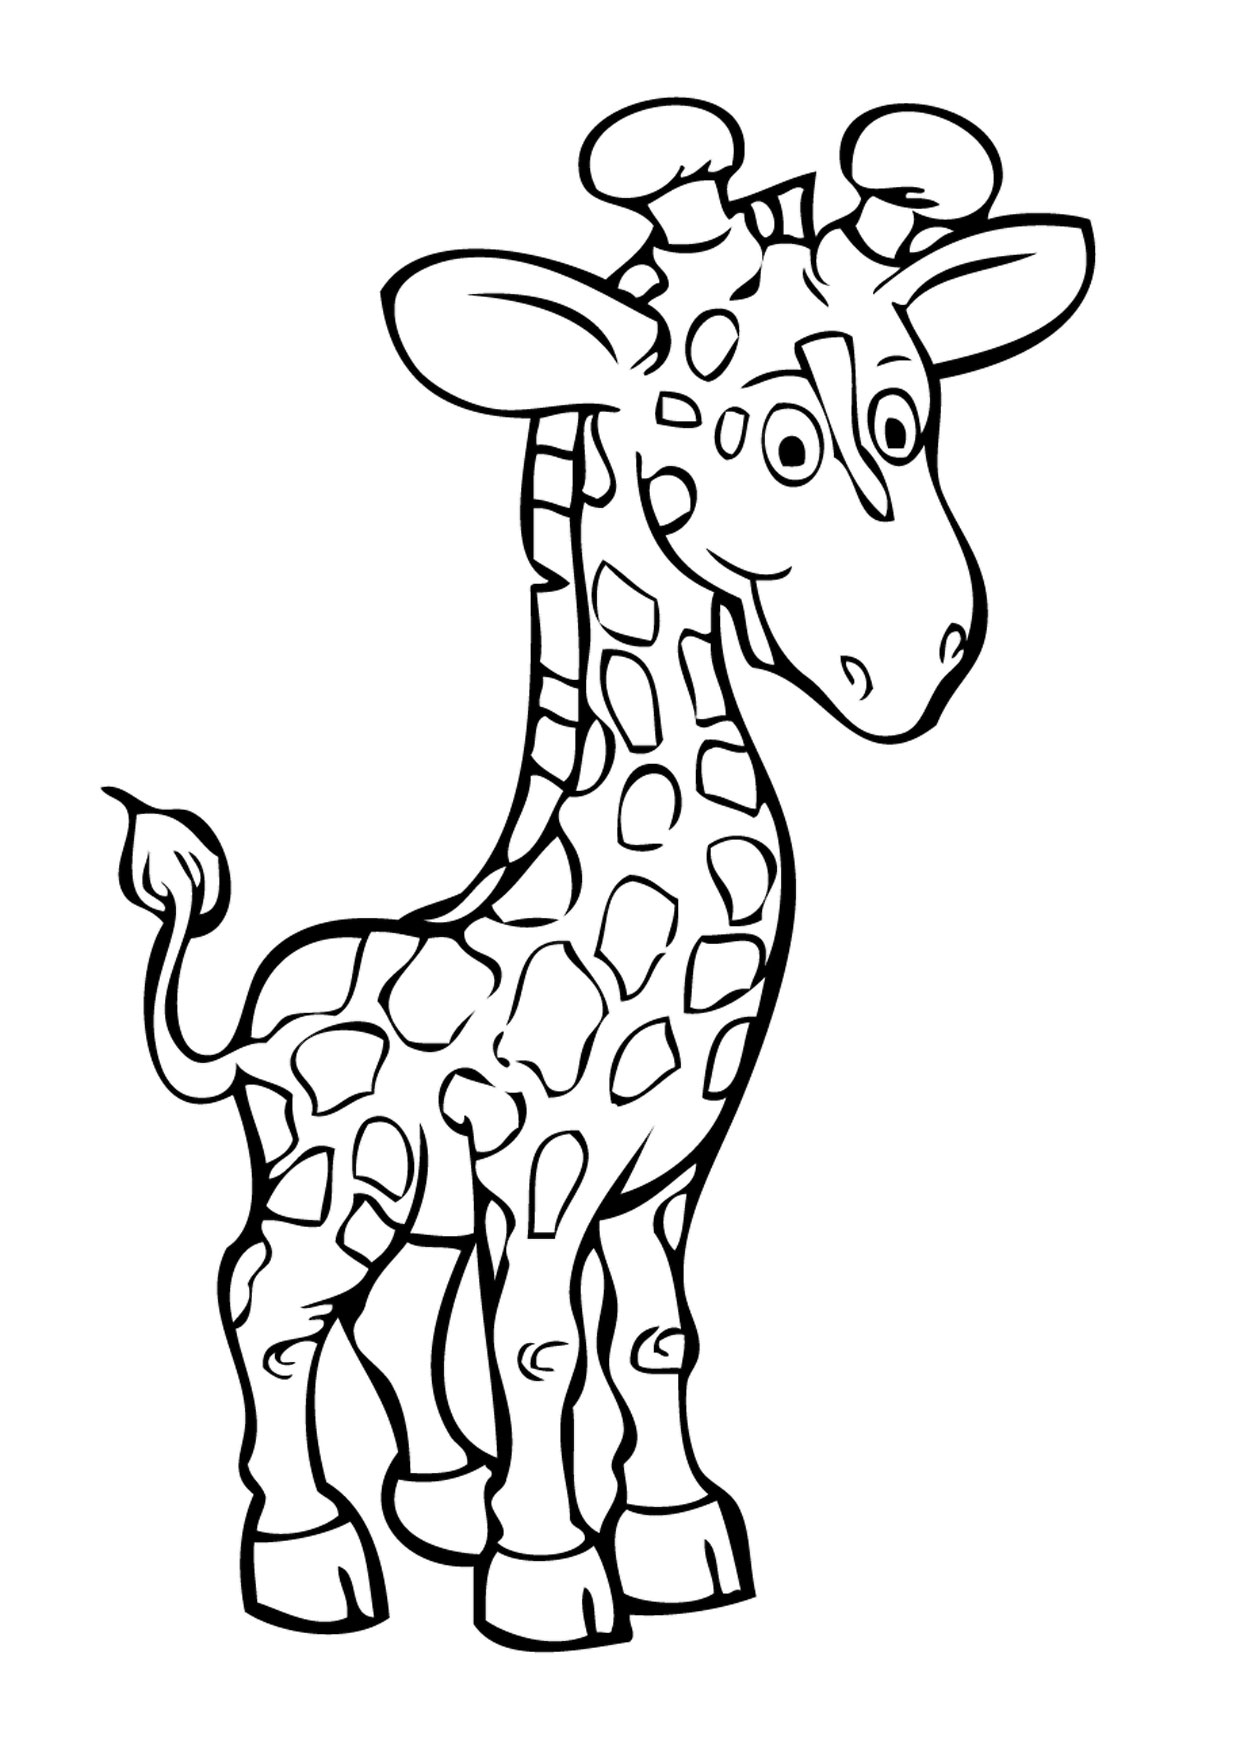 Giraffa in versione cartoon 08